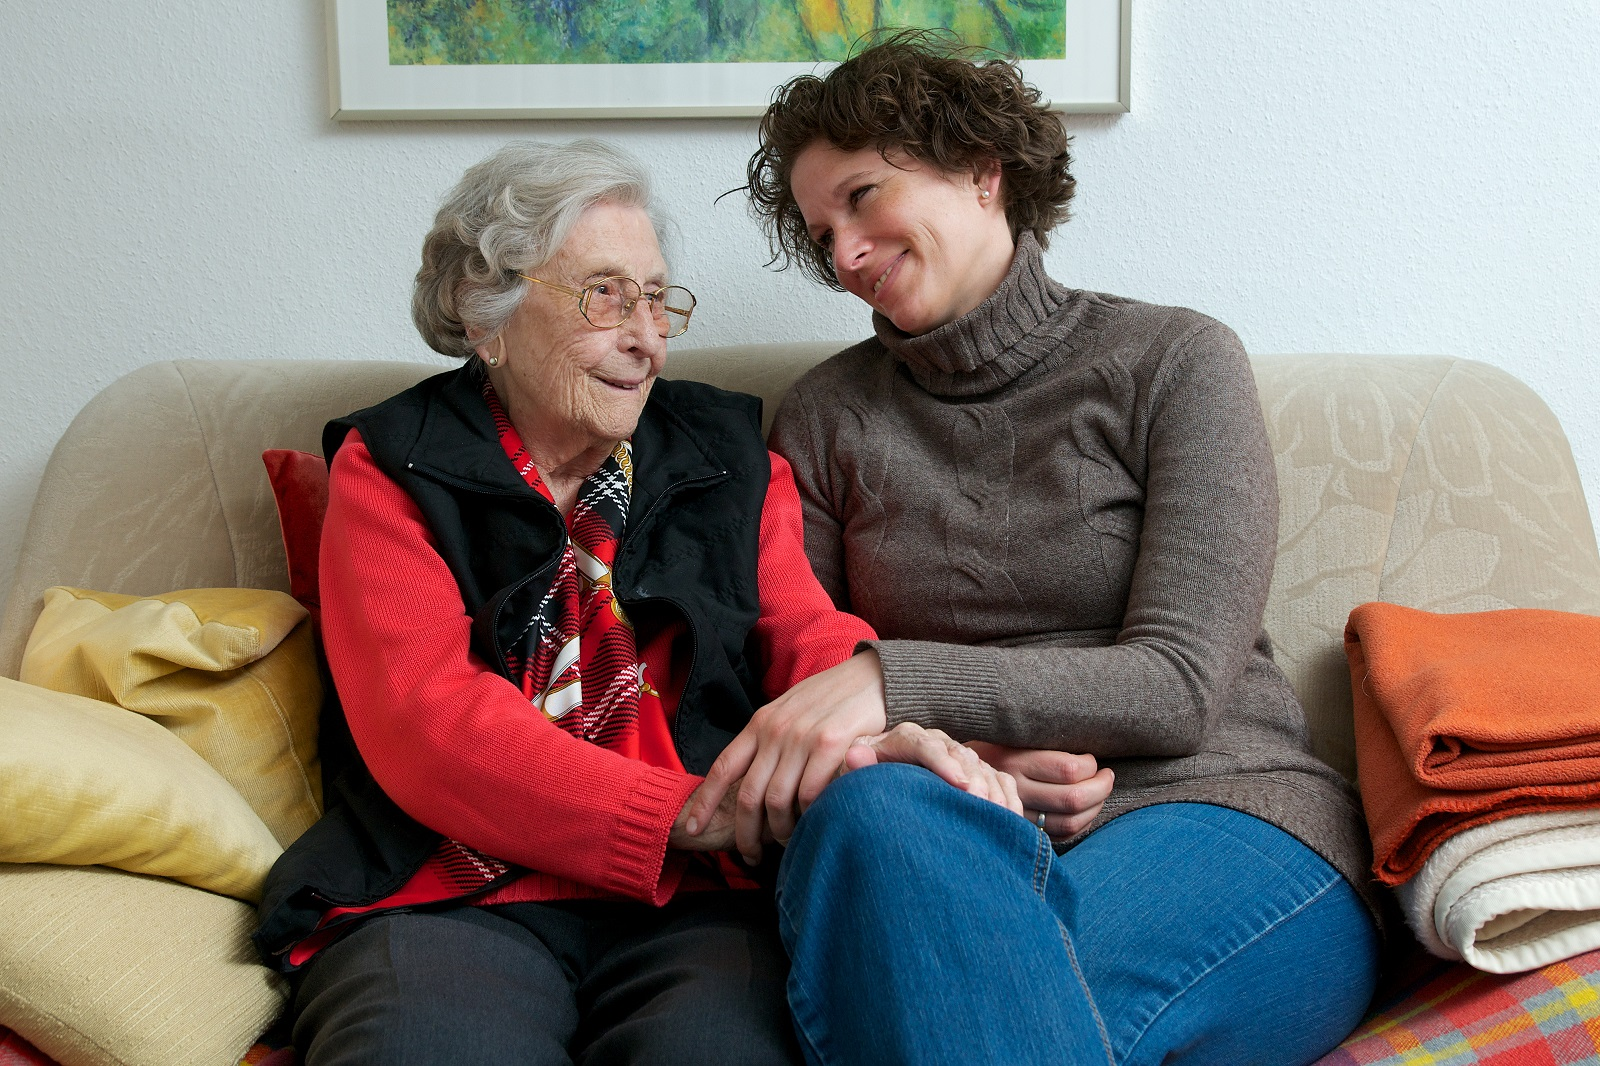 How to Have Meaningful Conversations with Dementia Patients